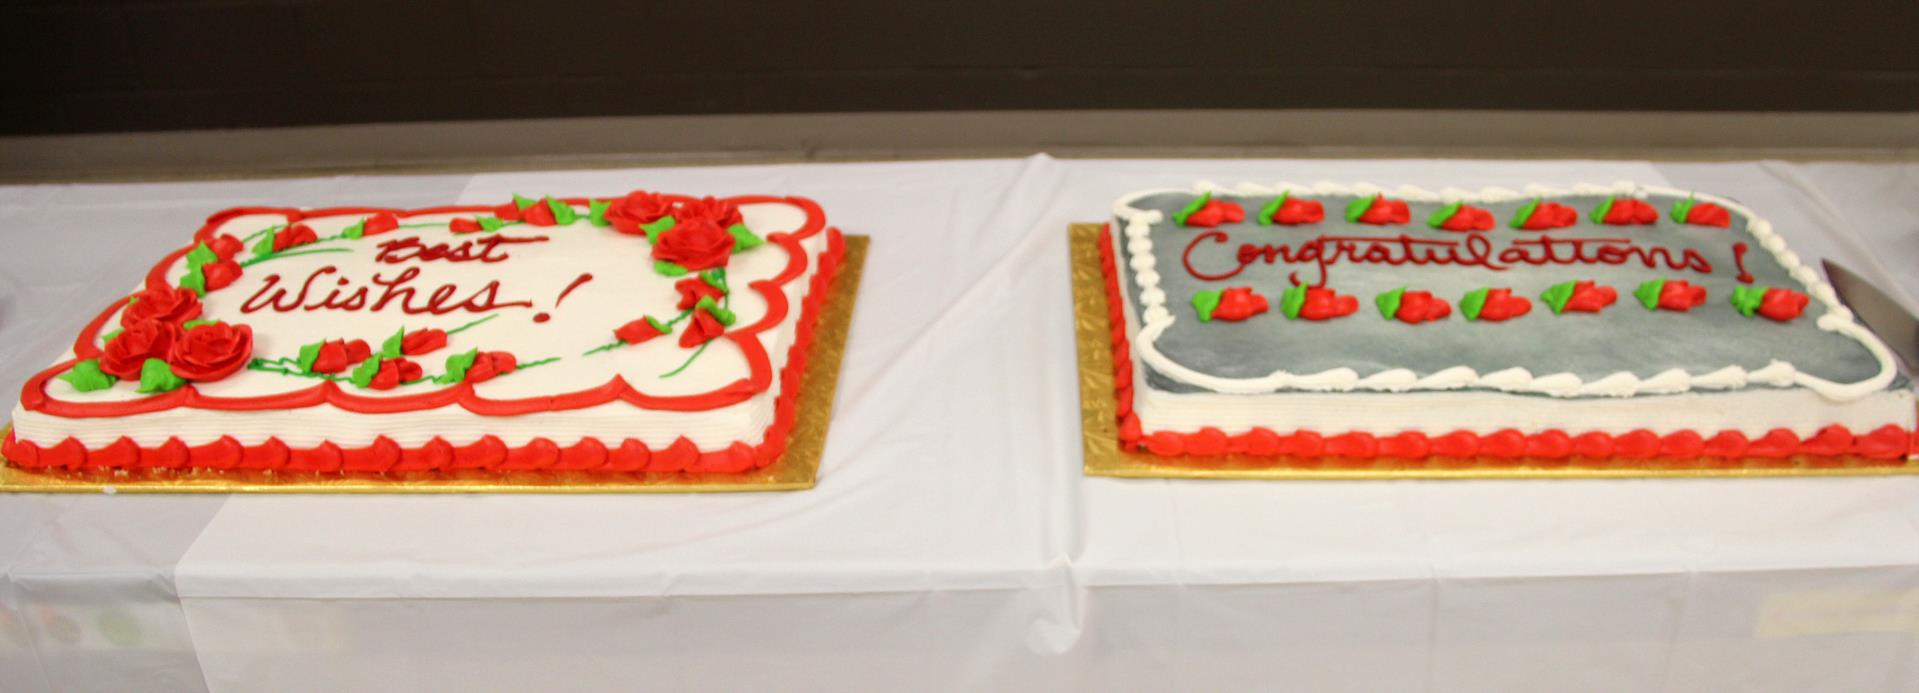 congratulations and best wishes cakes